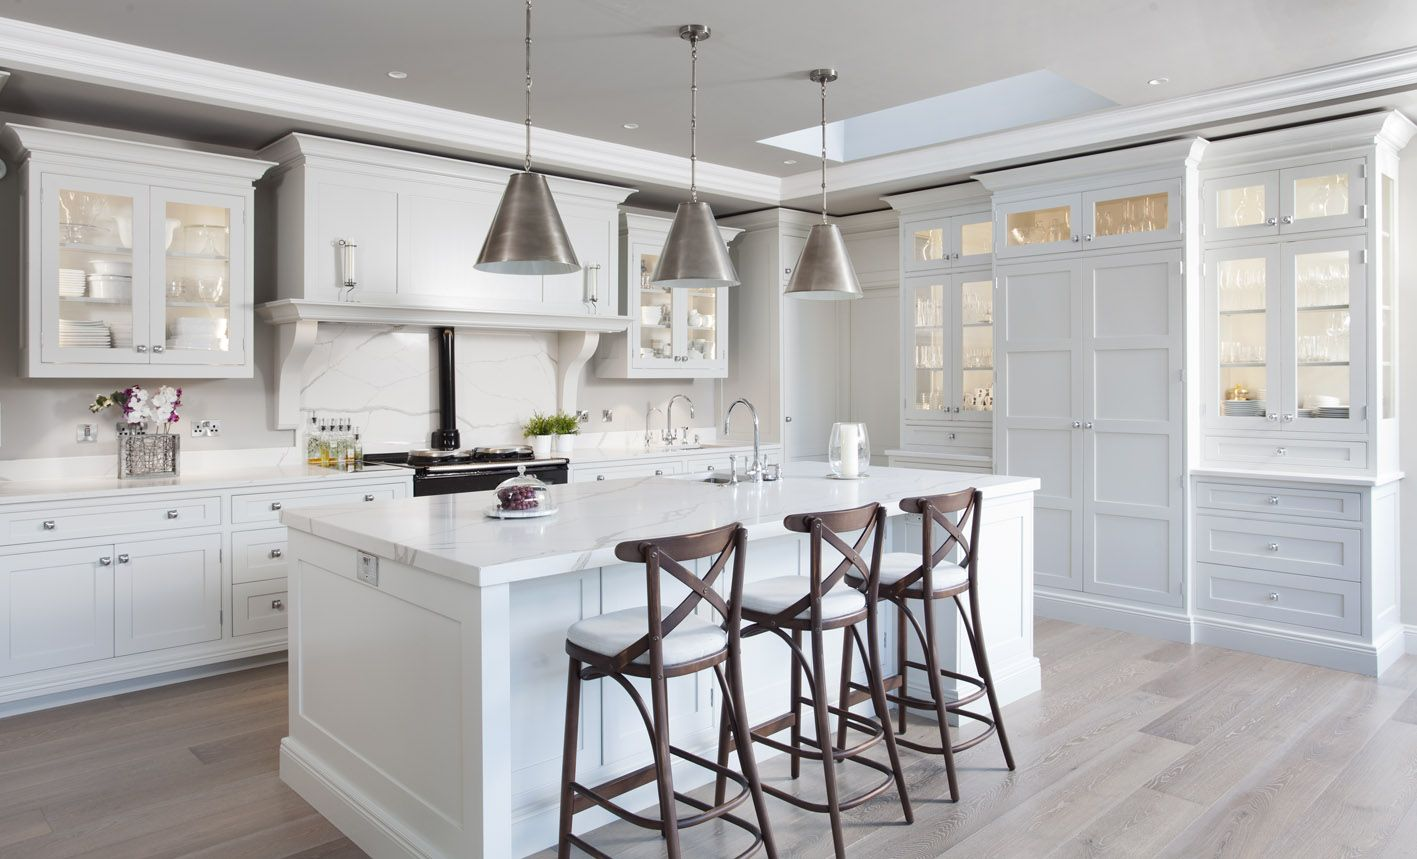 Pin by Woodale on Woodale Recent work Luxury kitchens